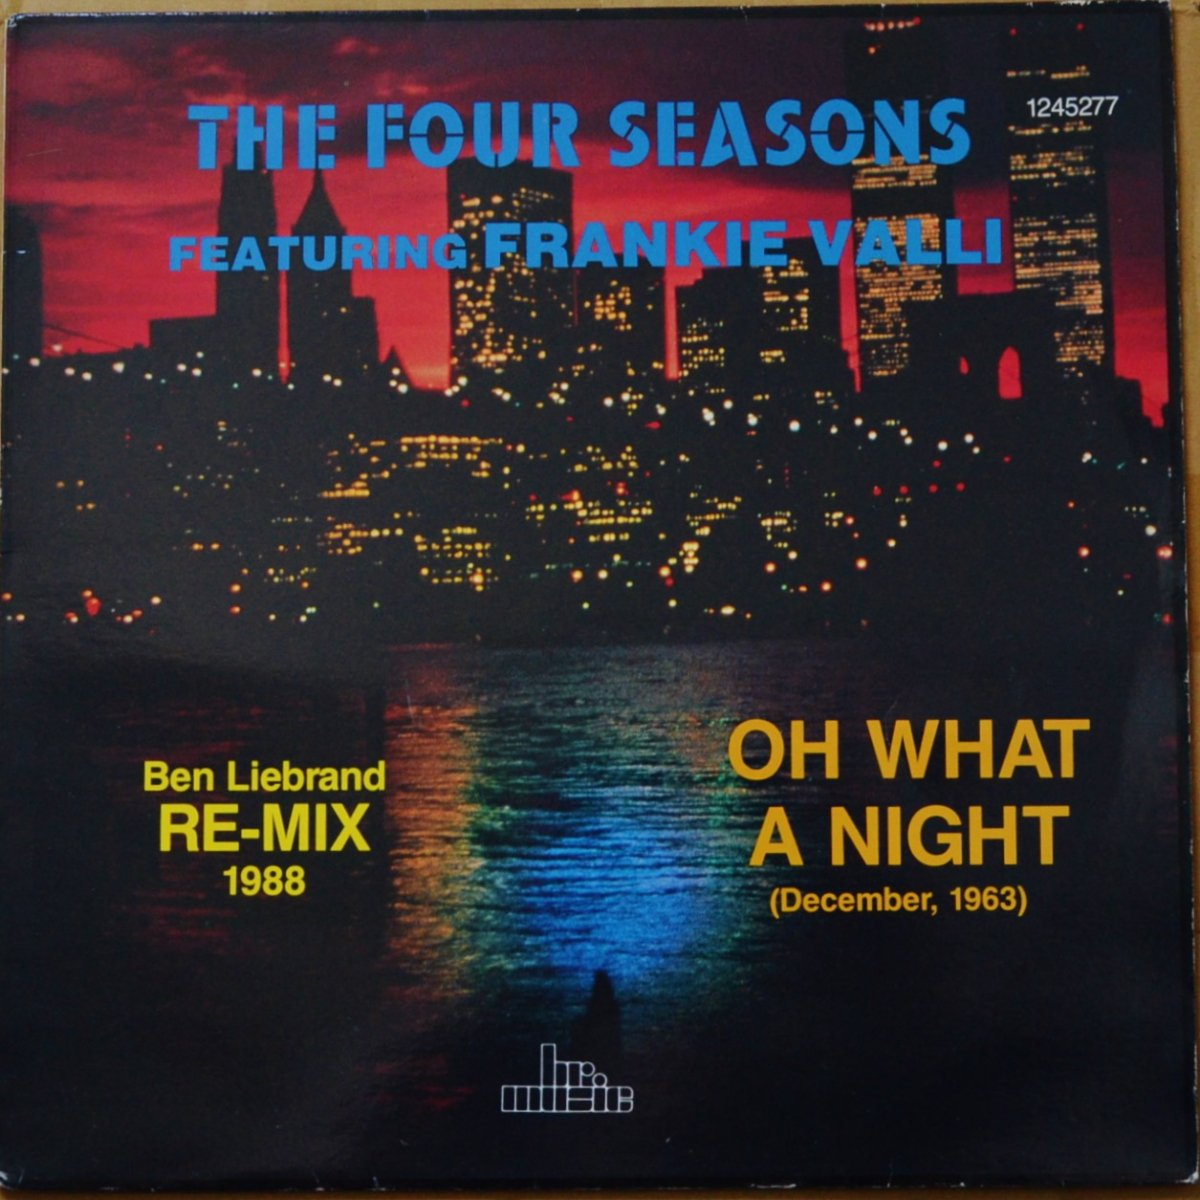 FRANKIE VALLI & THE FOUR SEASONS / OH WHAT A NIGHT (DECEMBER,1963) (BEN LIEBRAND RE-MIX 1988) (12